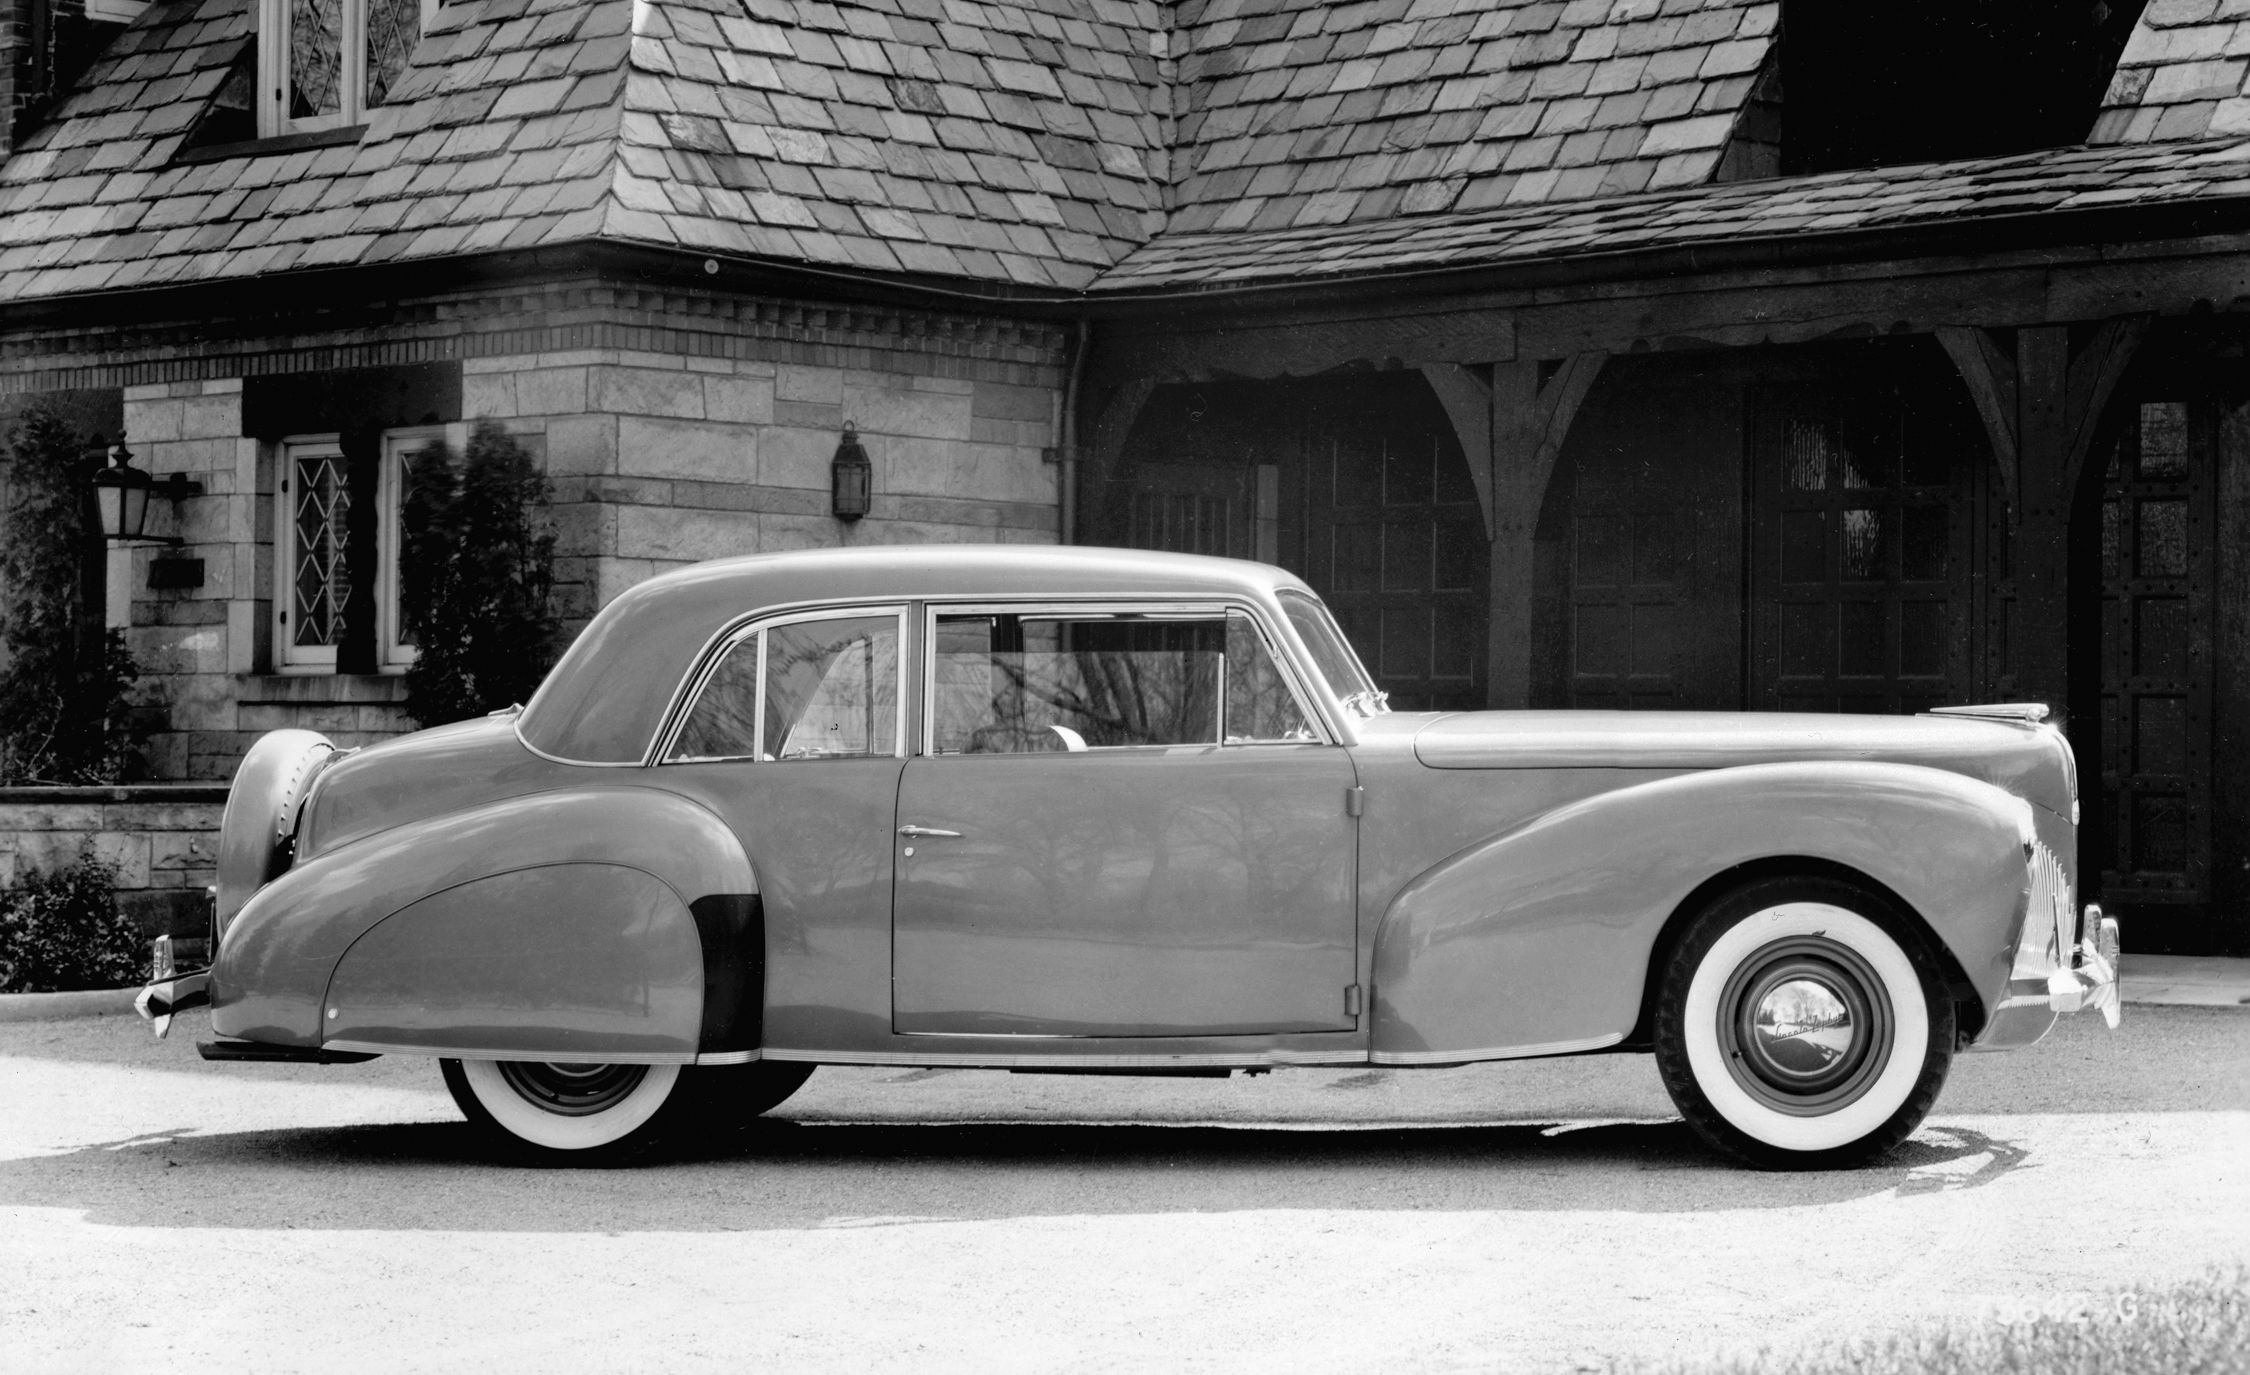 Ford-for-All: These Are the 20 Best Ford Cars of All Time | Flipbook ...